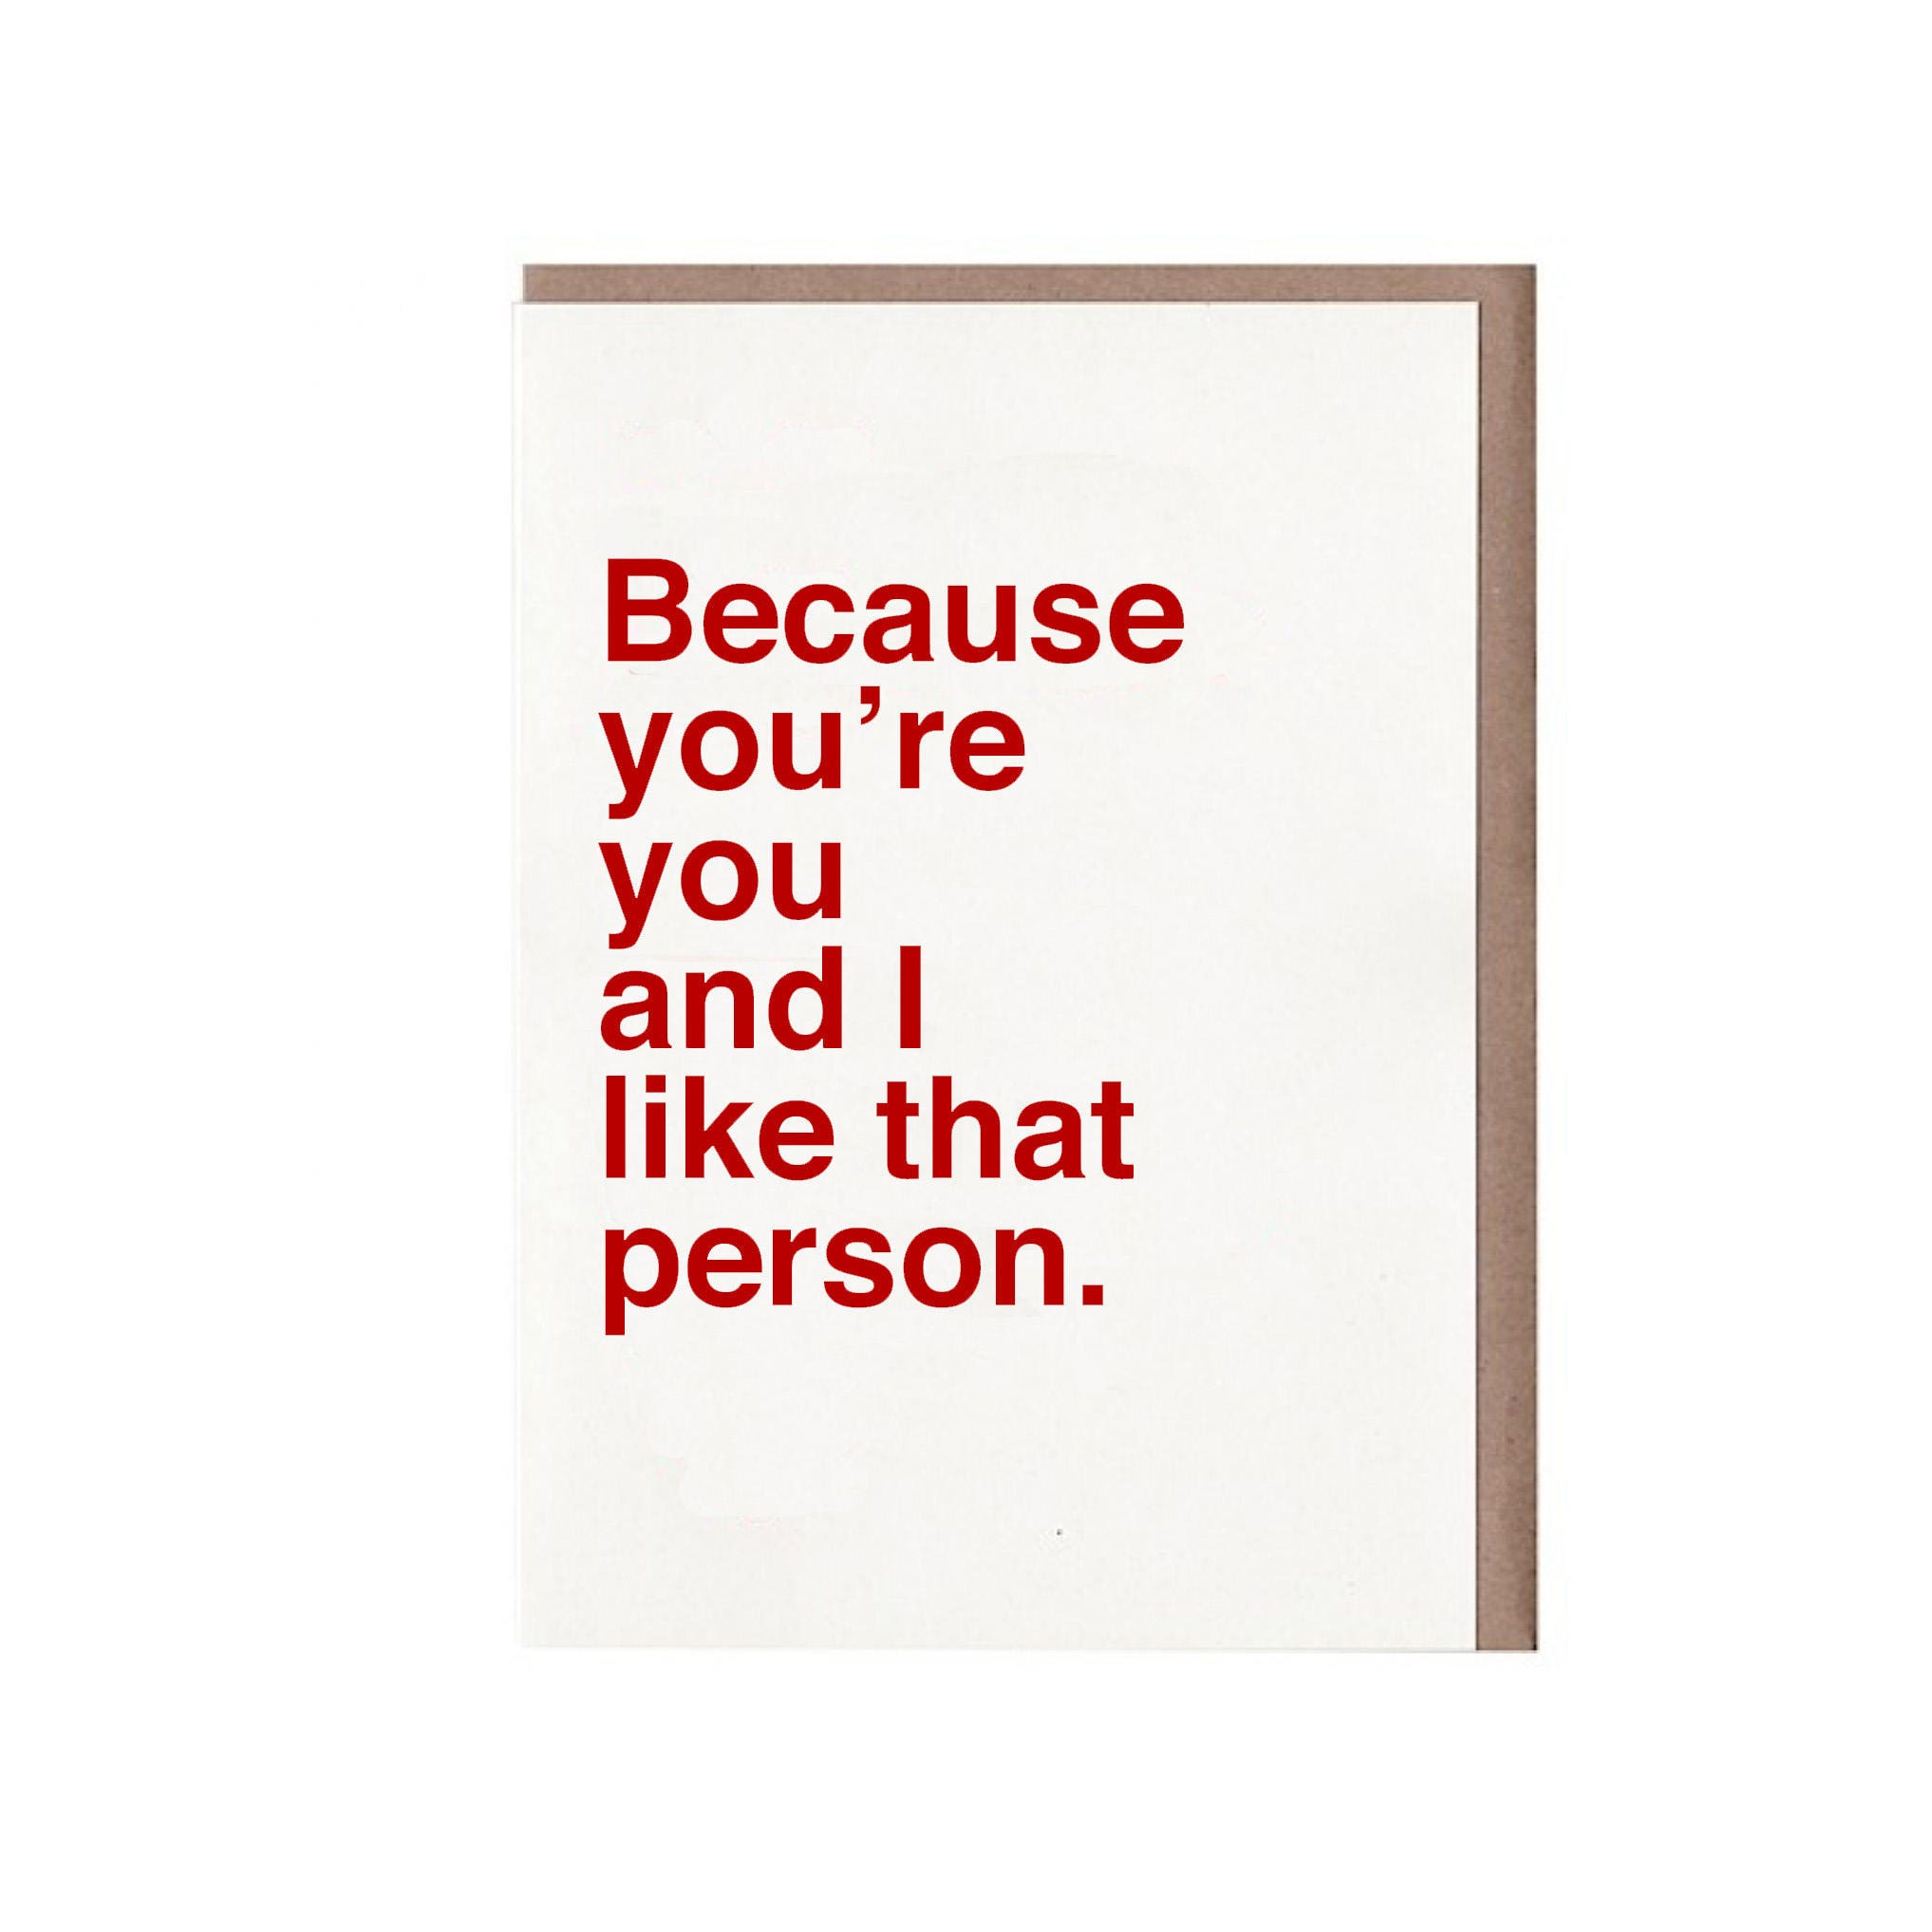 Funny Valentine Card   Valentines Card Funny   Friend Valentine Card    Because Youu0027re You And I Like That Person.